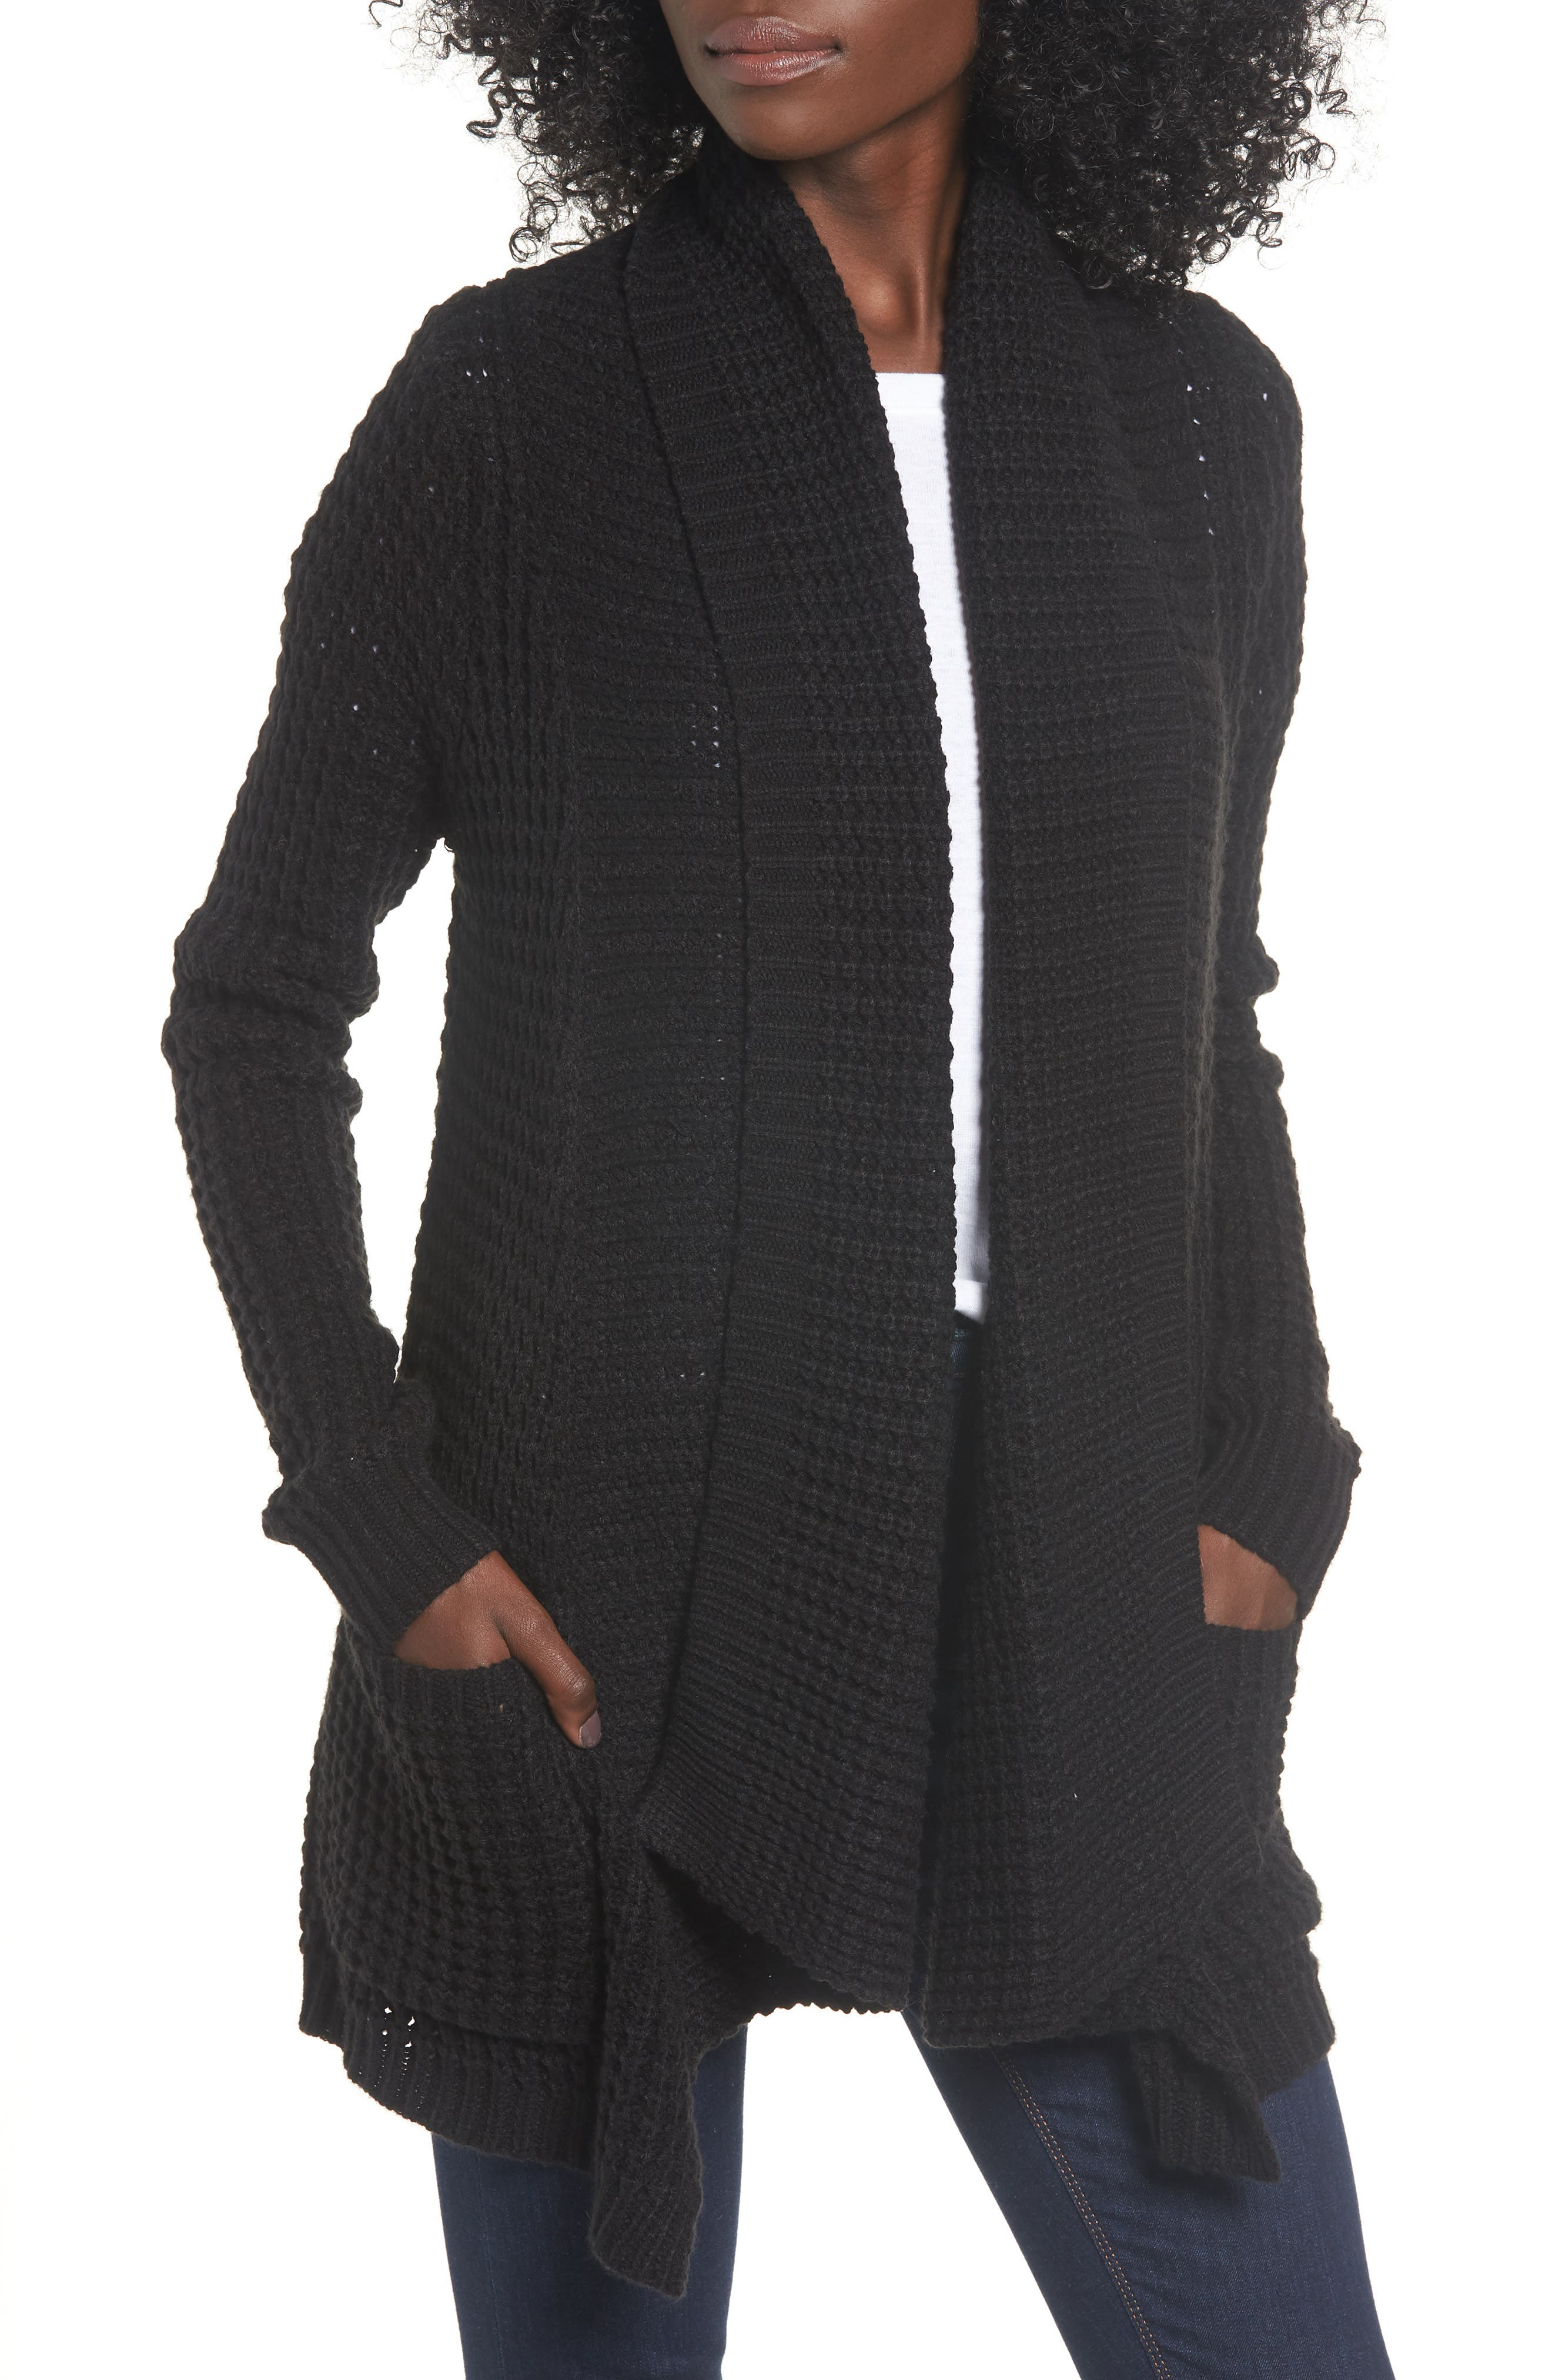 Shambala Knit Cardigan,                         Main,                         color, BLACK